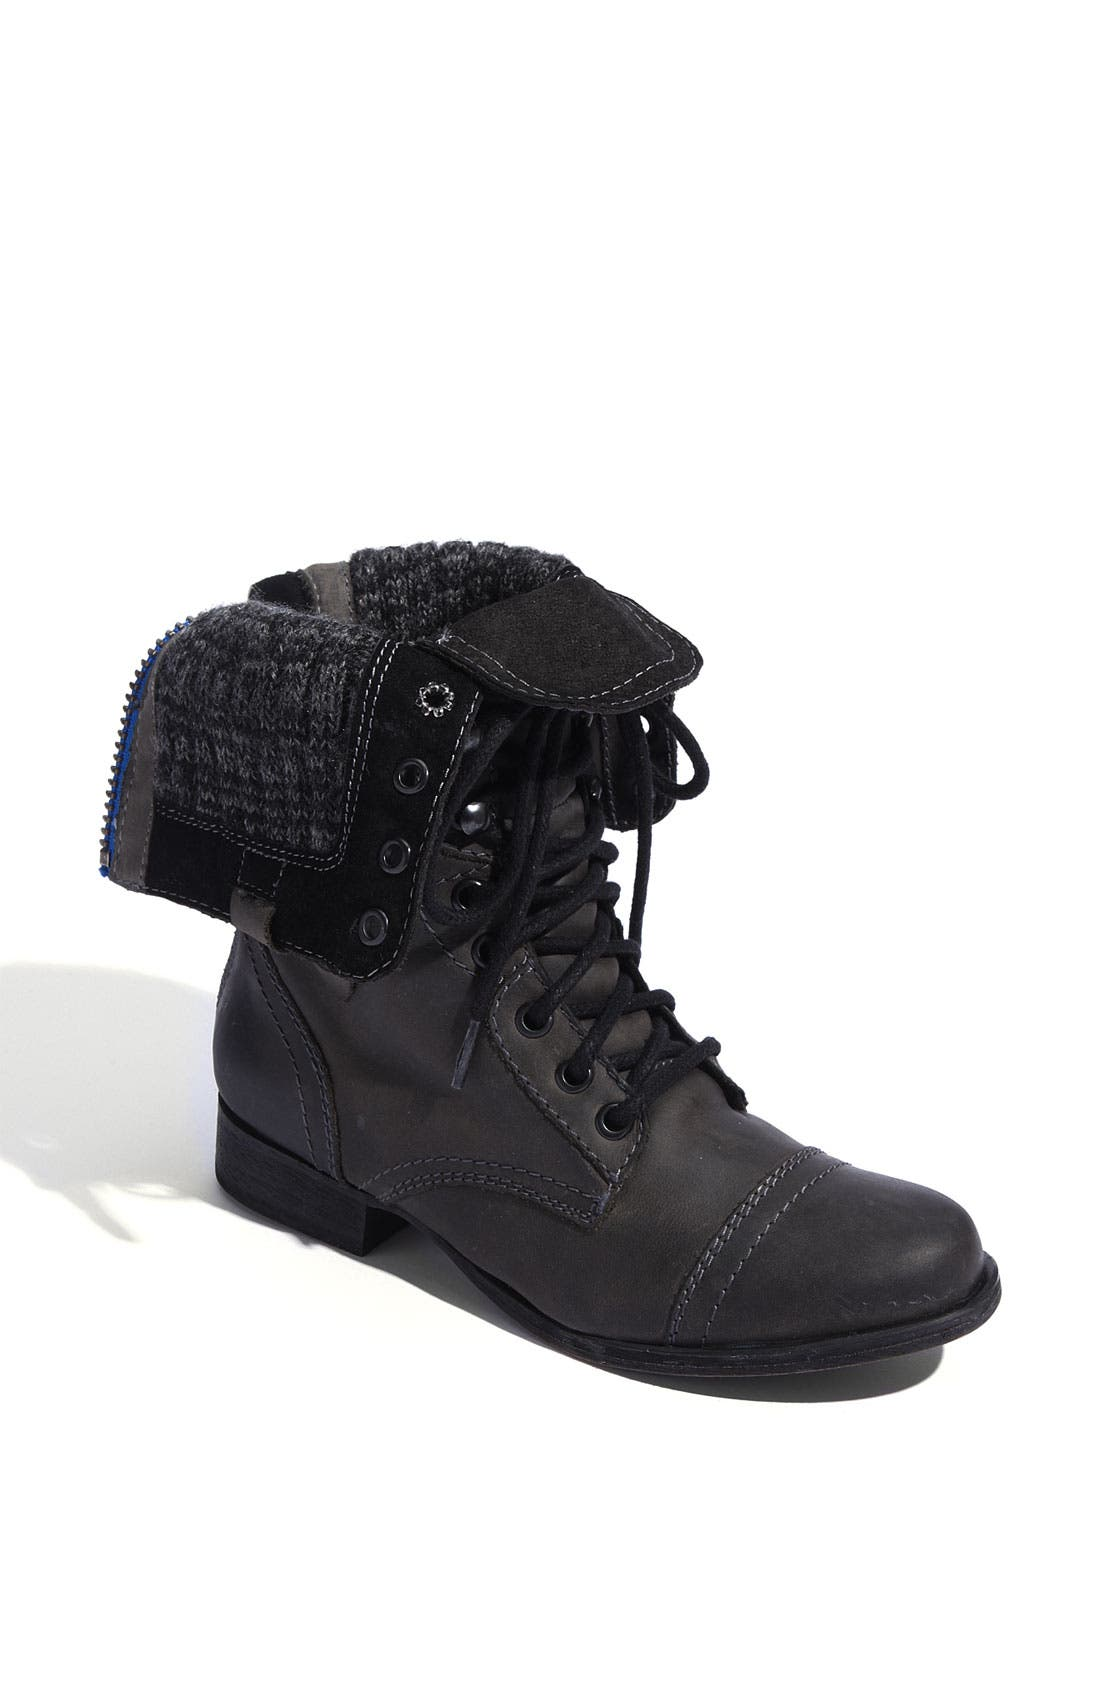 'Cablee' Boot,                             Main thumbnail 1, color,                             001